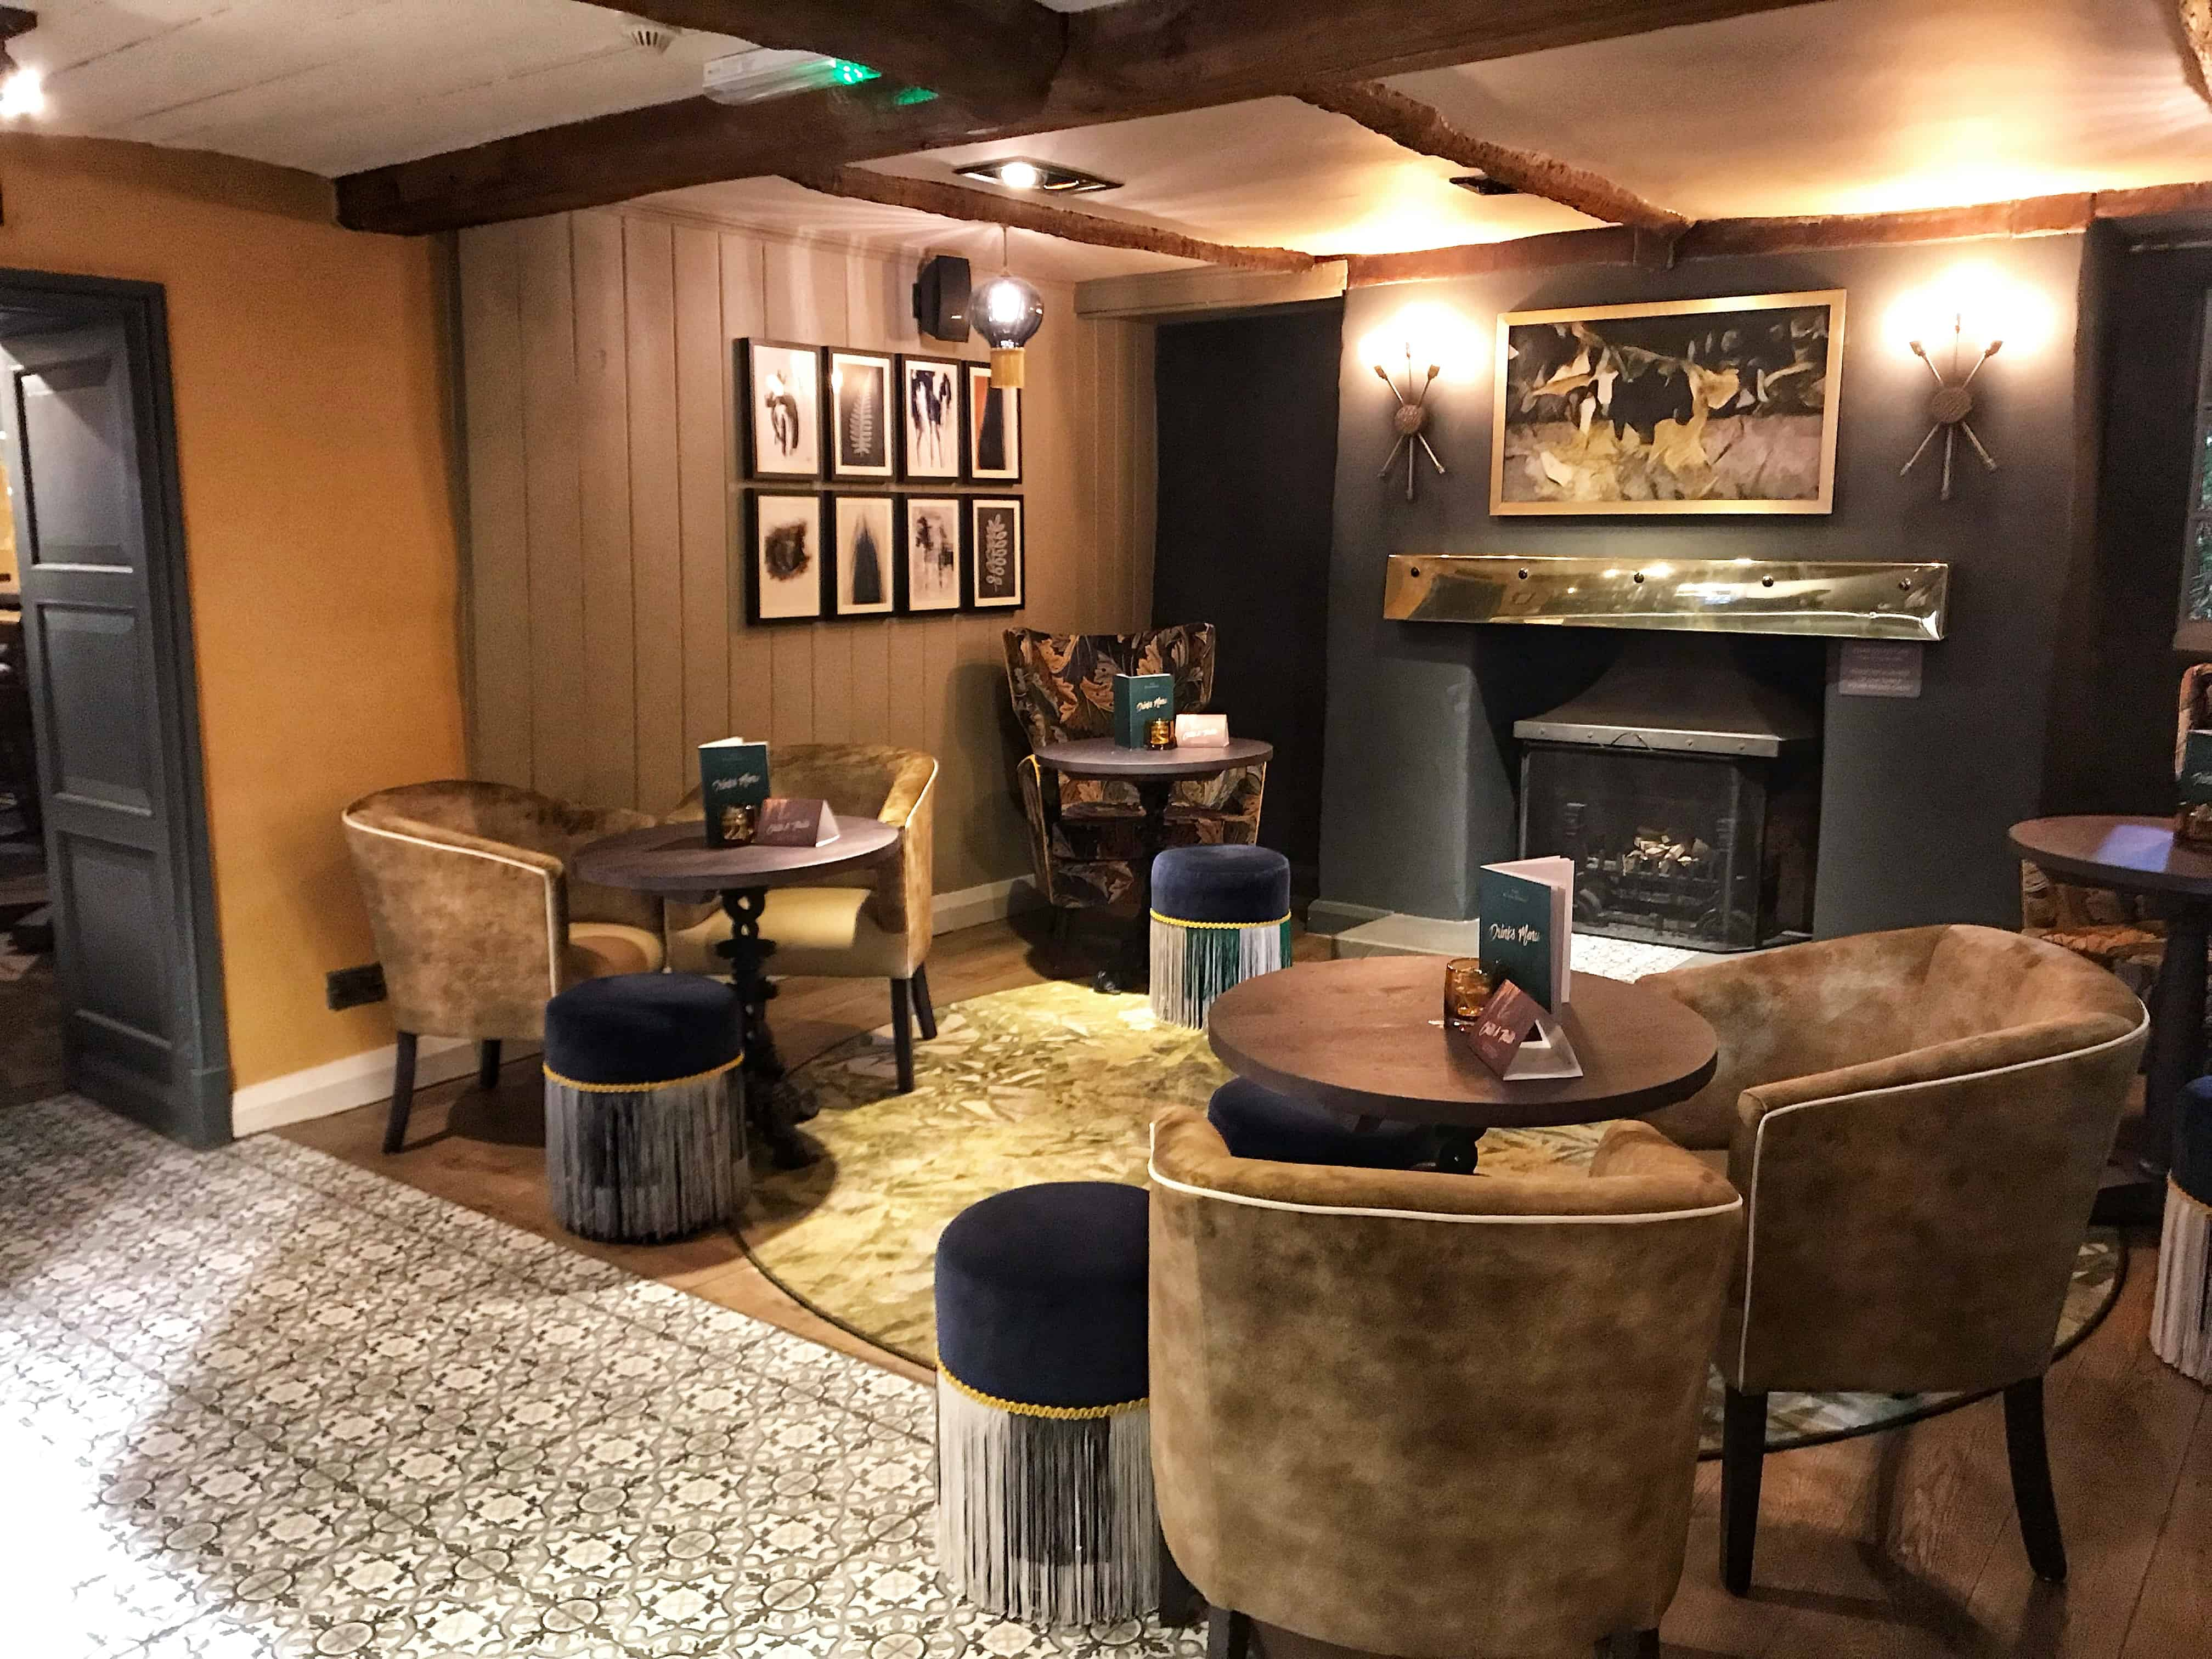 Peek Inside the Refurbished Black Horse Pub and Restaurant